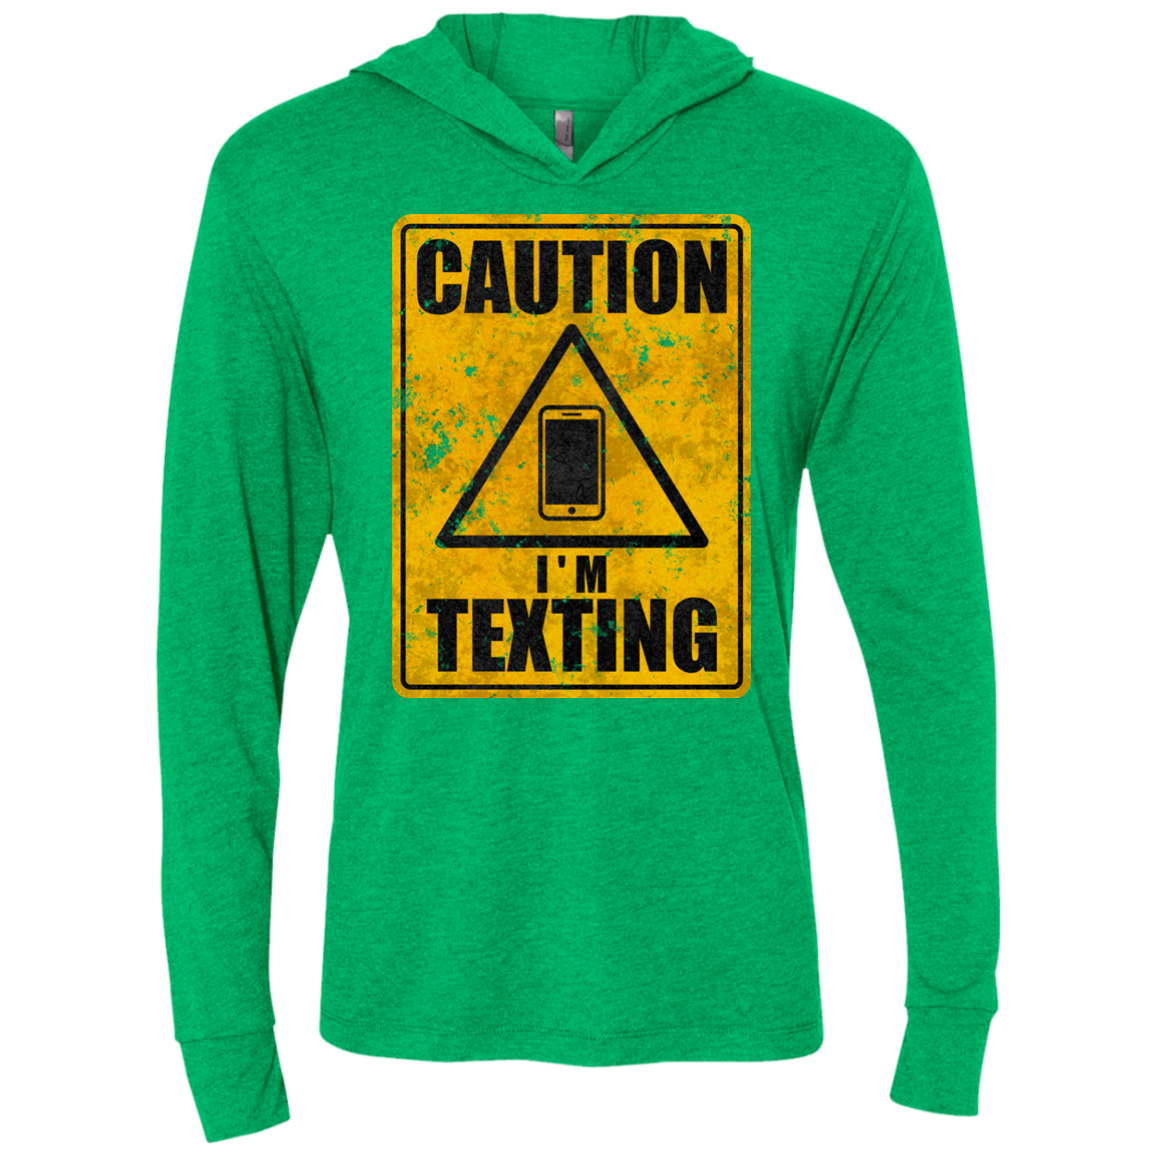 Caution I m Texting Triblend Long Sleeve Hoodie Tee